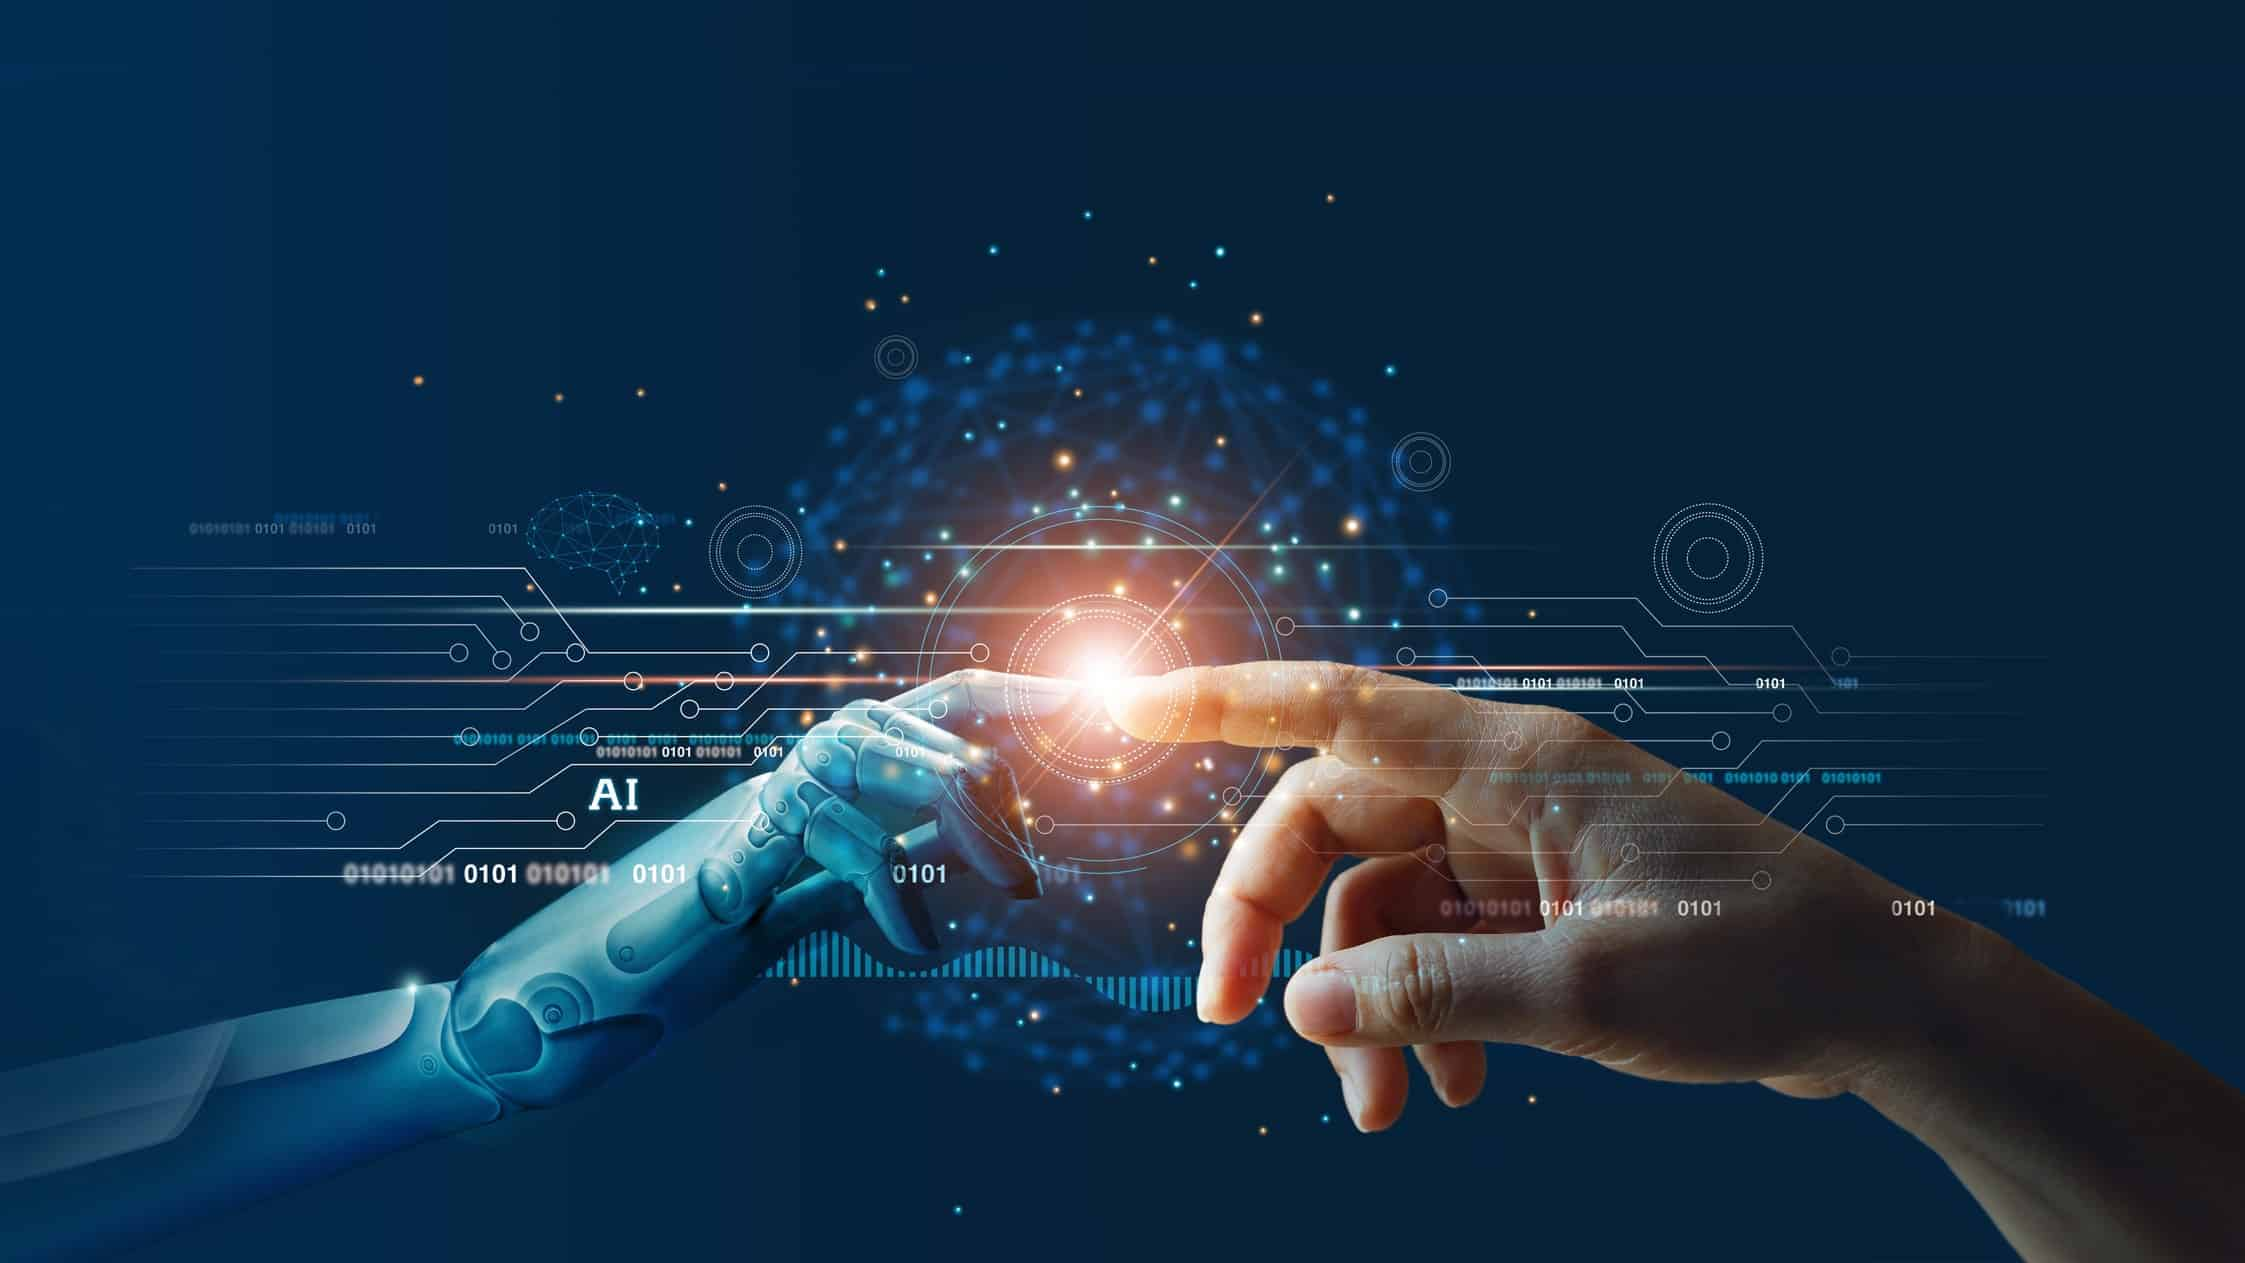 Digitised image of human hand reaching out to touch robotic hand signifying ASX artificial intelligence share price